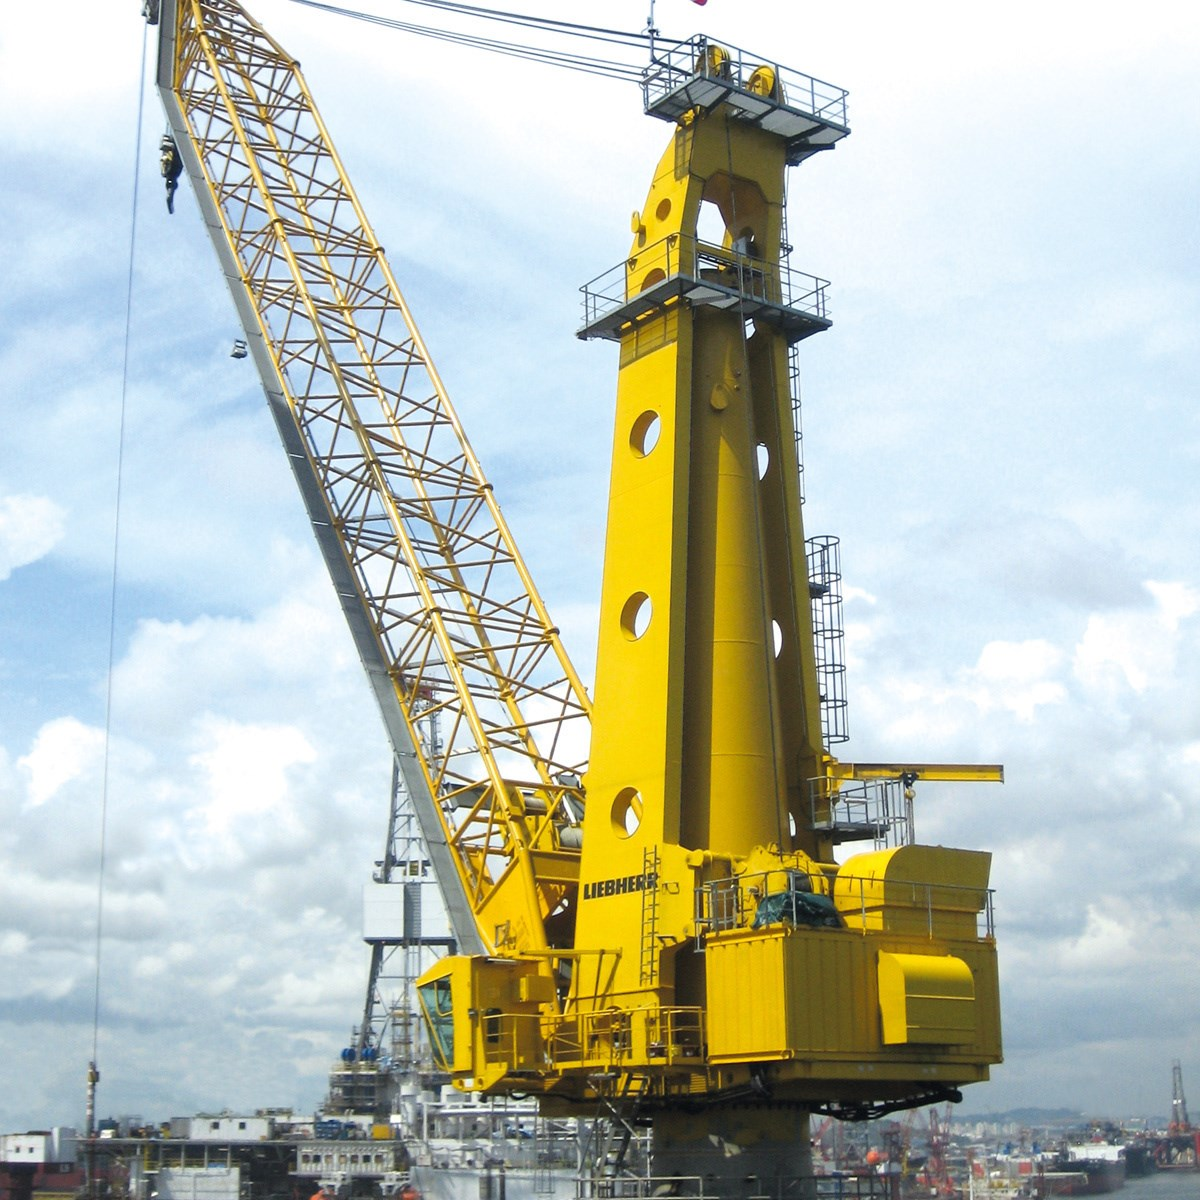 Mtc 6000 offshore cranes liebherr for The crain